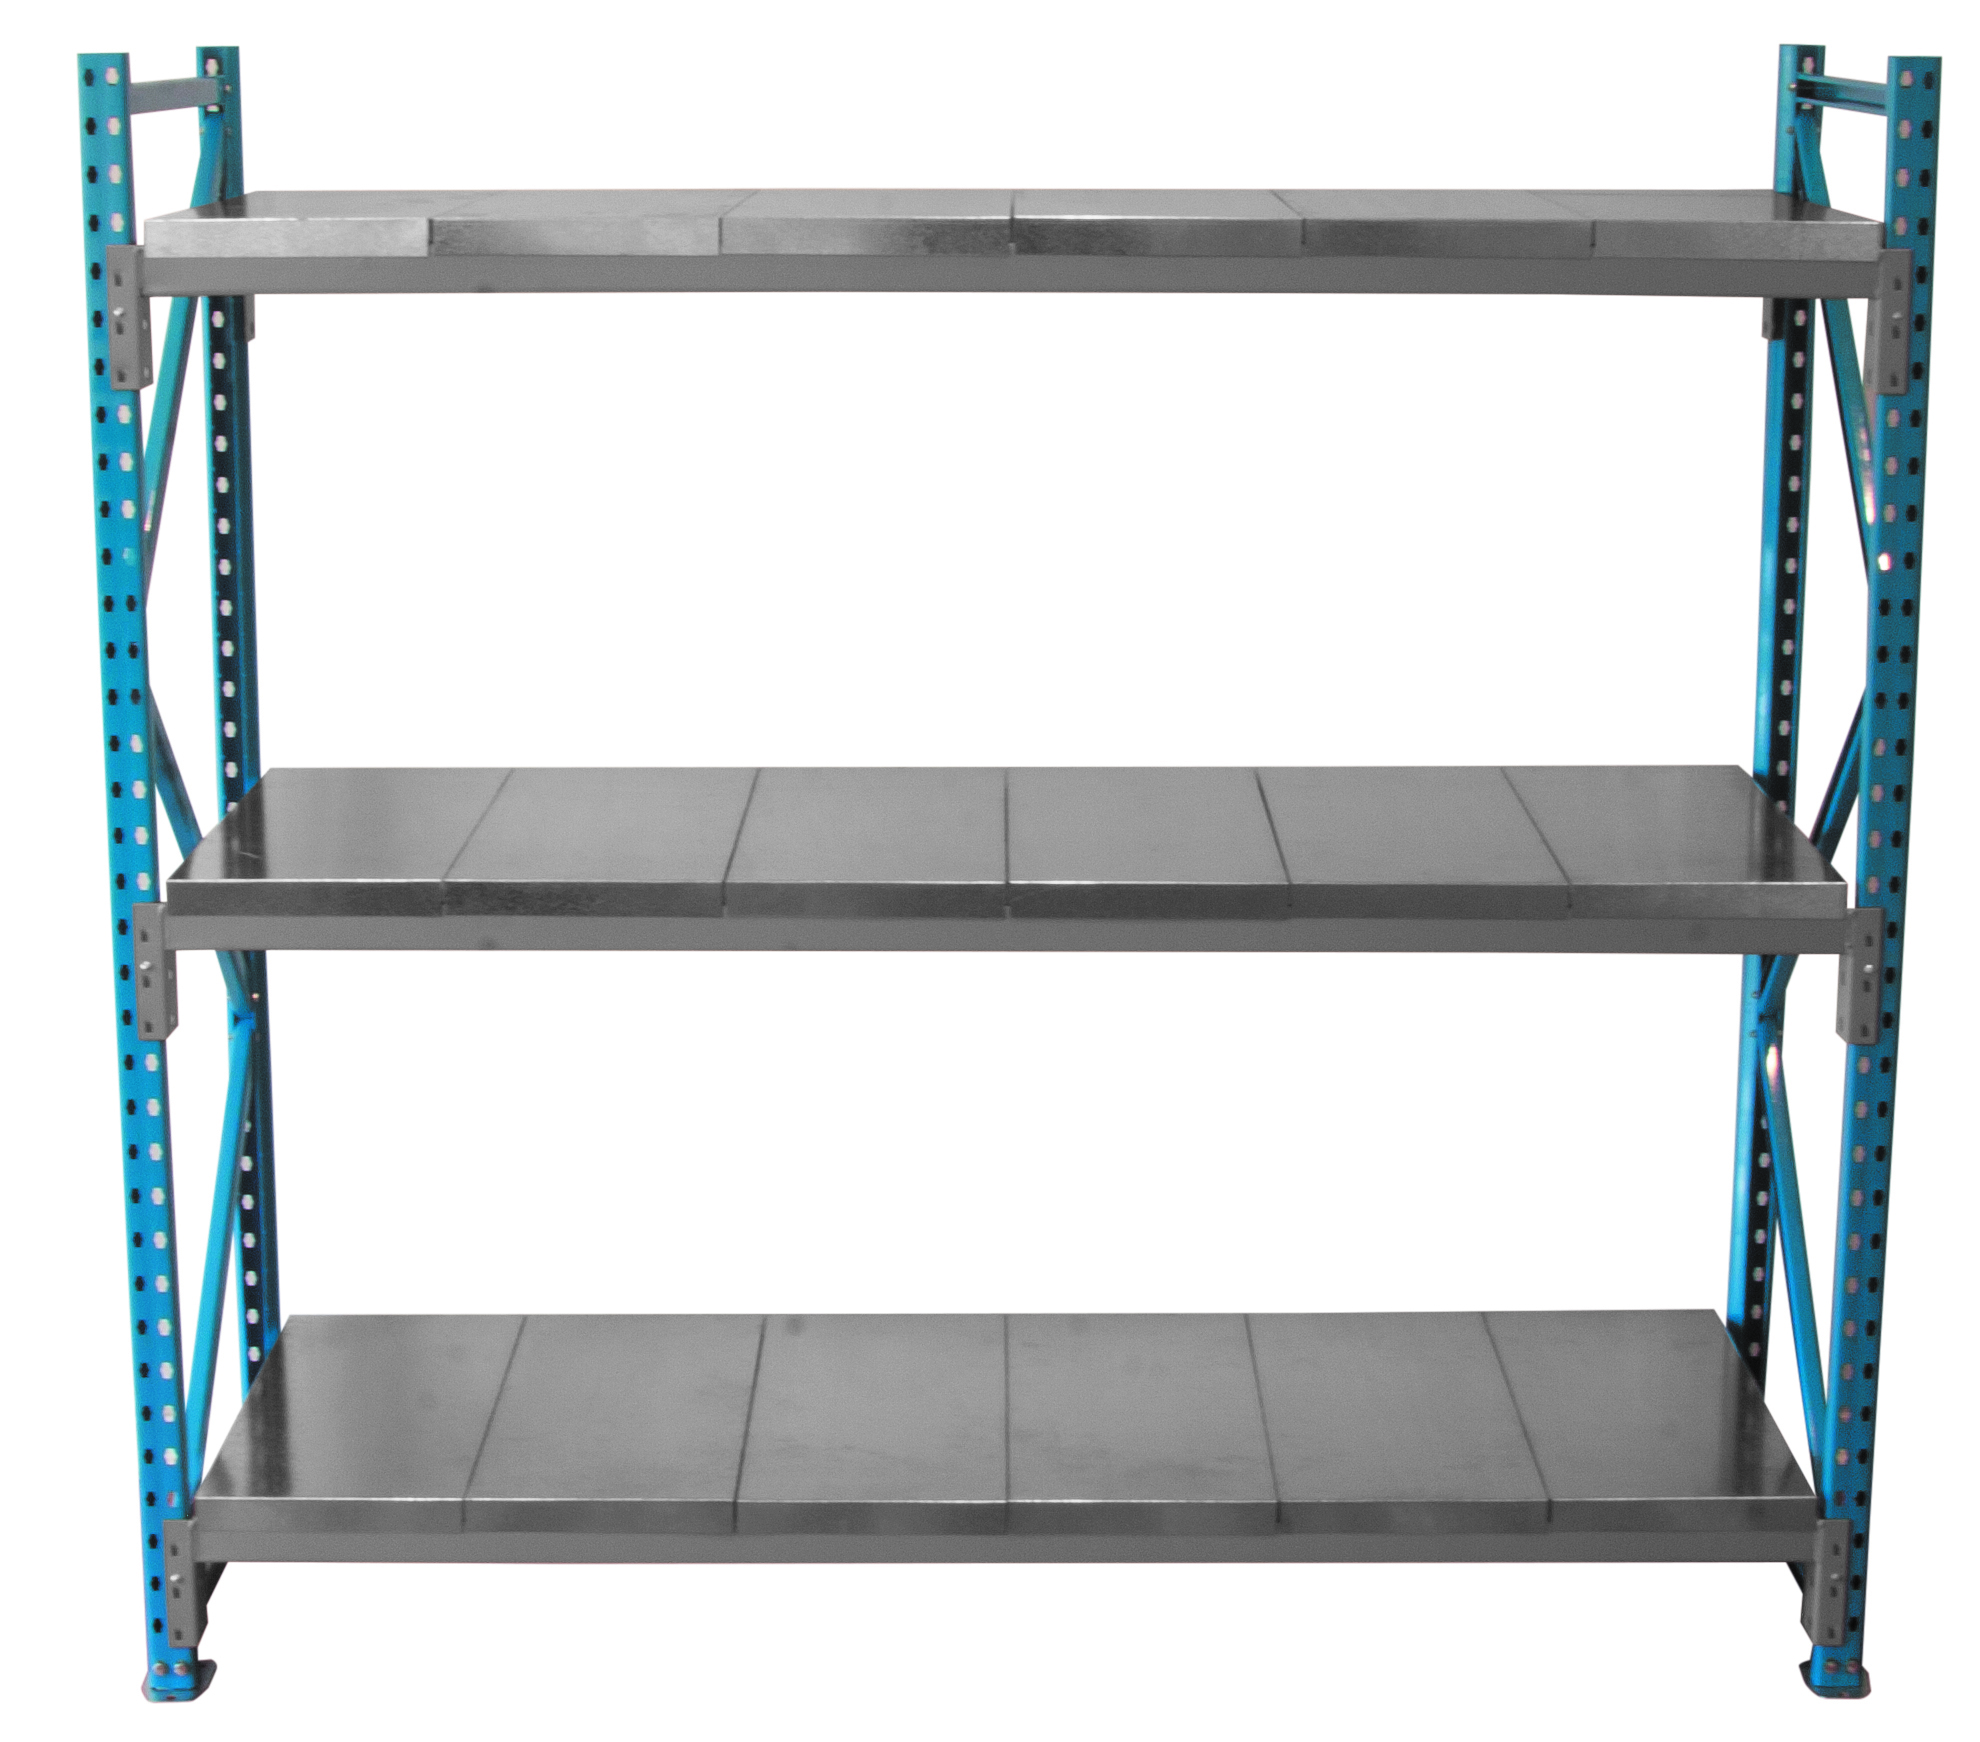 Light Duty Racking Decking Amp Support Beams 187 Mr Shelf